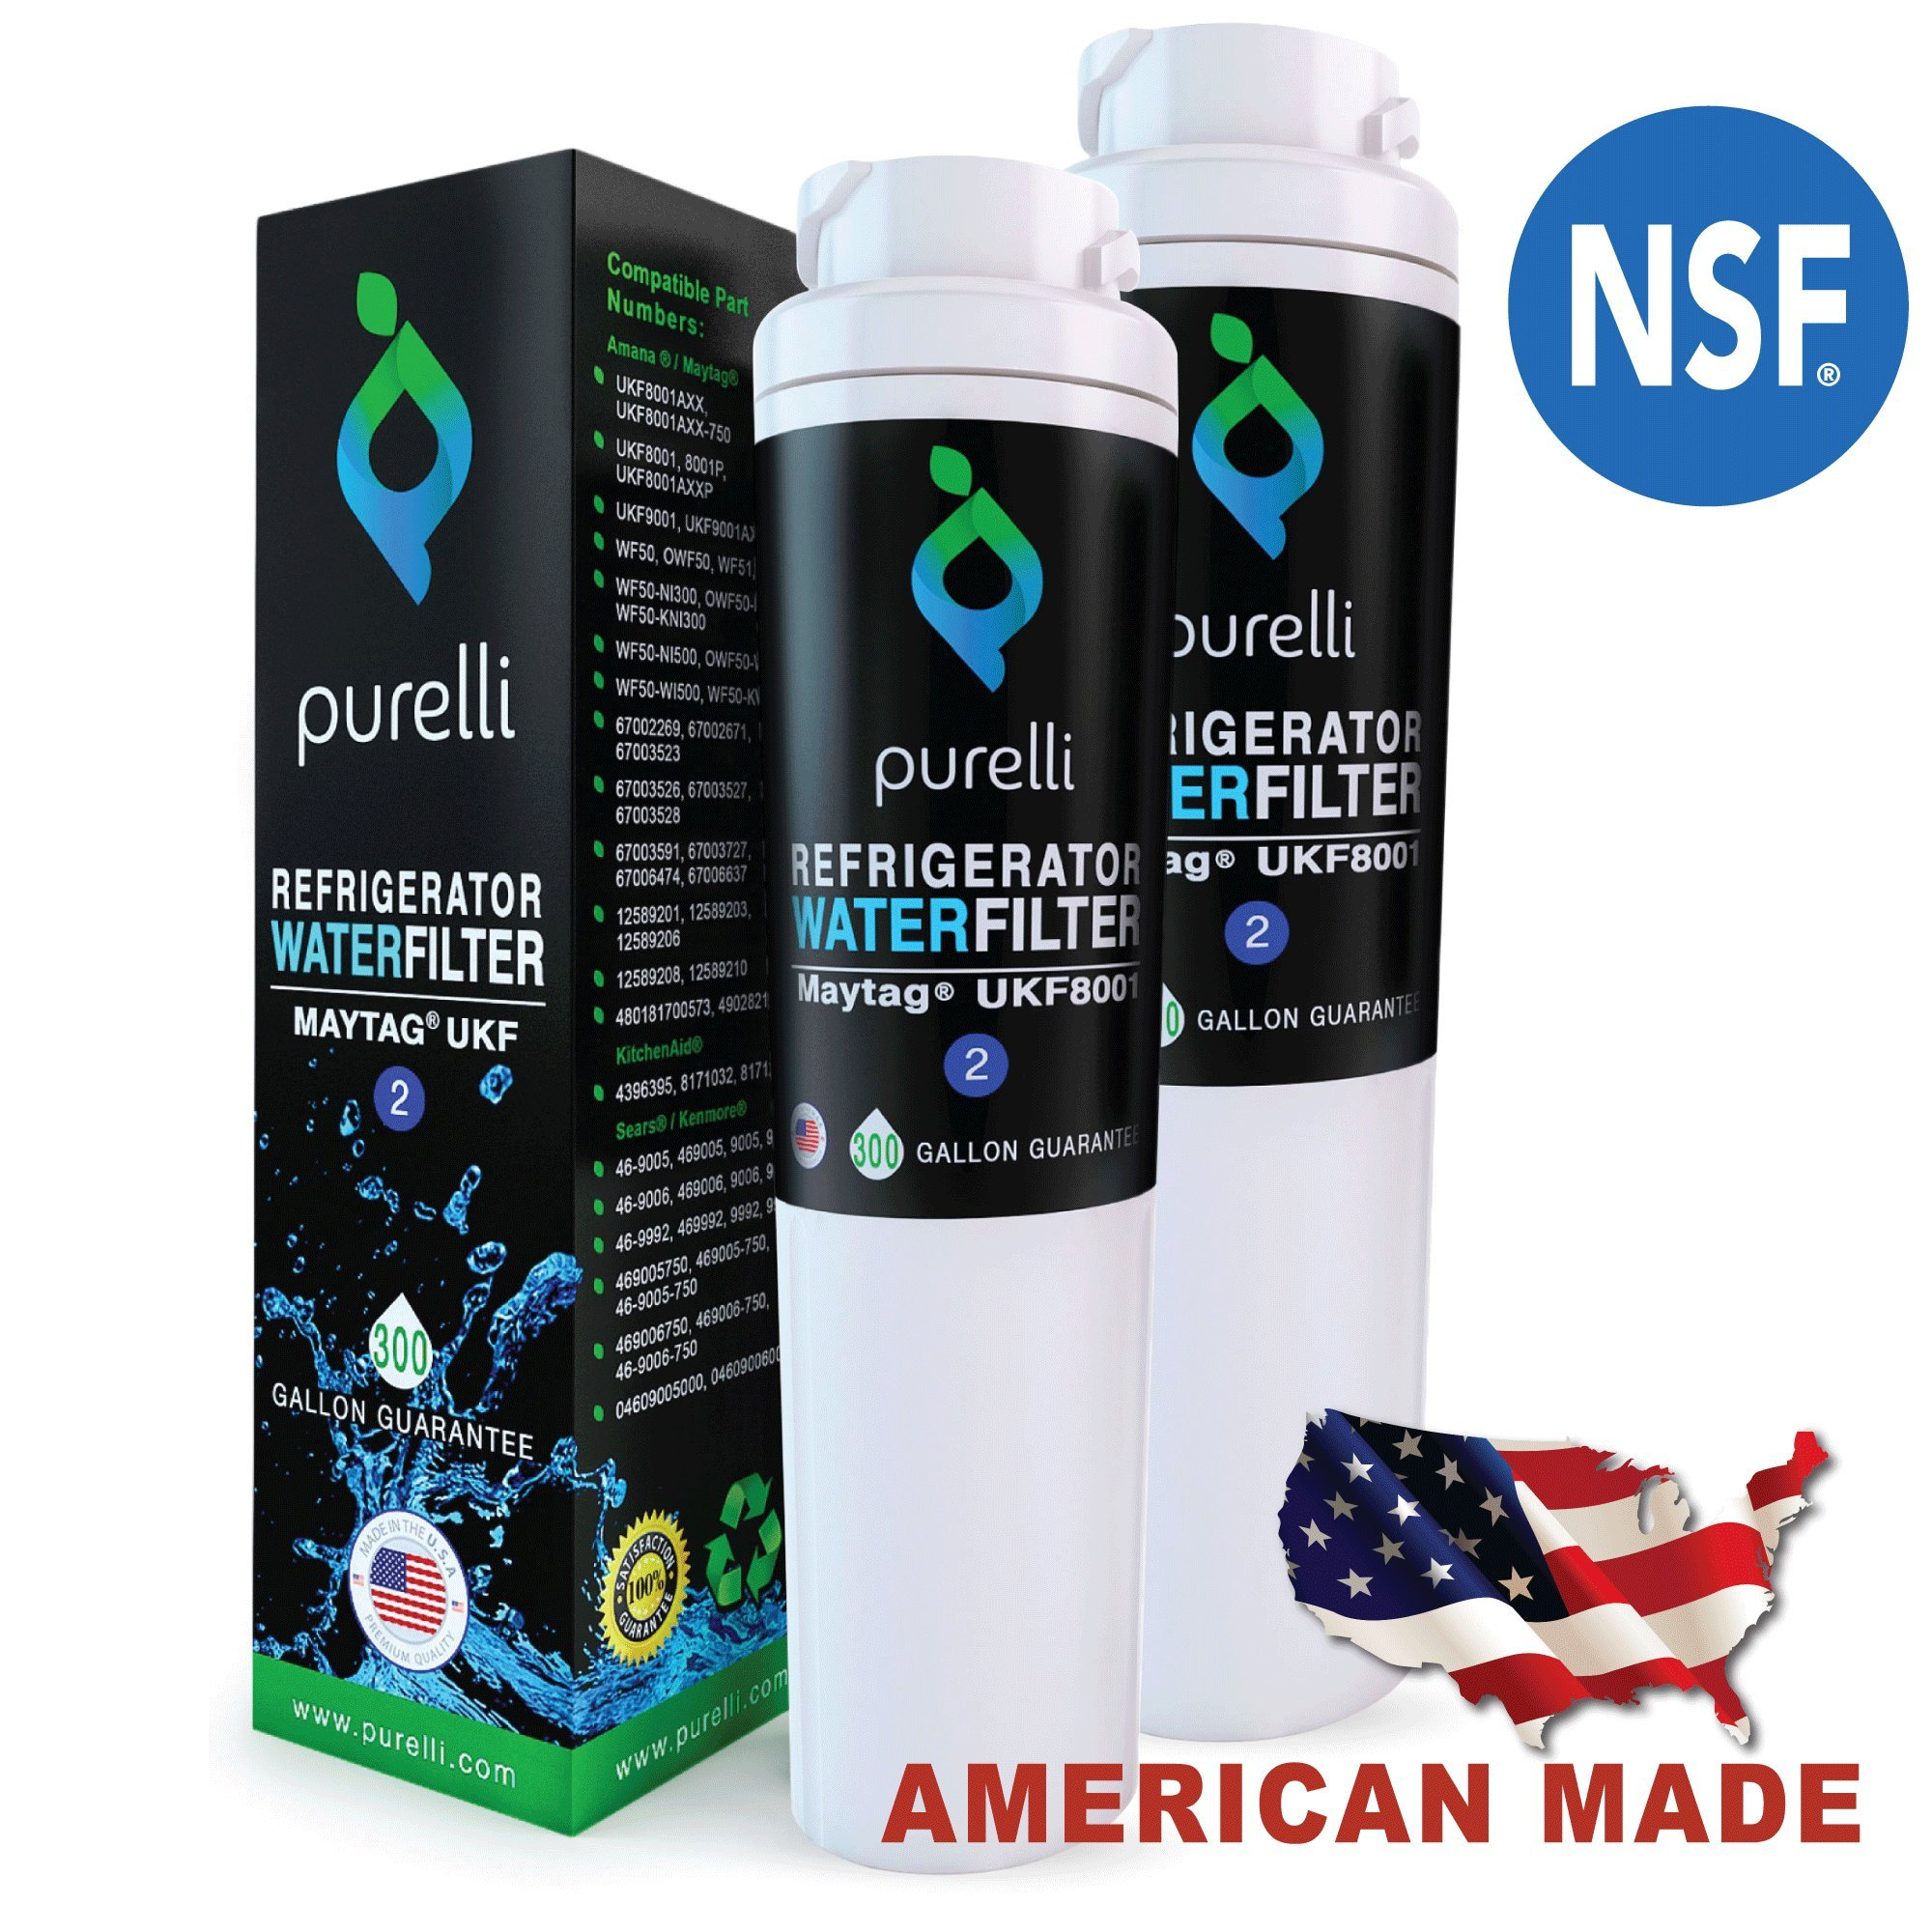 Purelli UKF8001 2-Pack Refrigerator Water Filter – Compatible Replacement for Maytag UKF8001, EDR4RXD1, FILTER 4, UKF8001AXX, Whirlpool 4396395, Puriclean II, Kenmore 46 9006 by Purelli